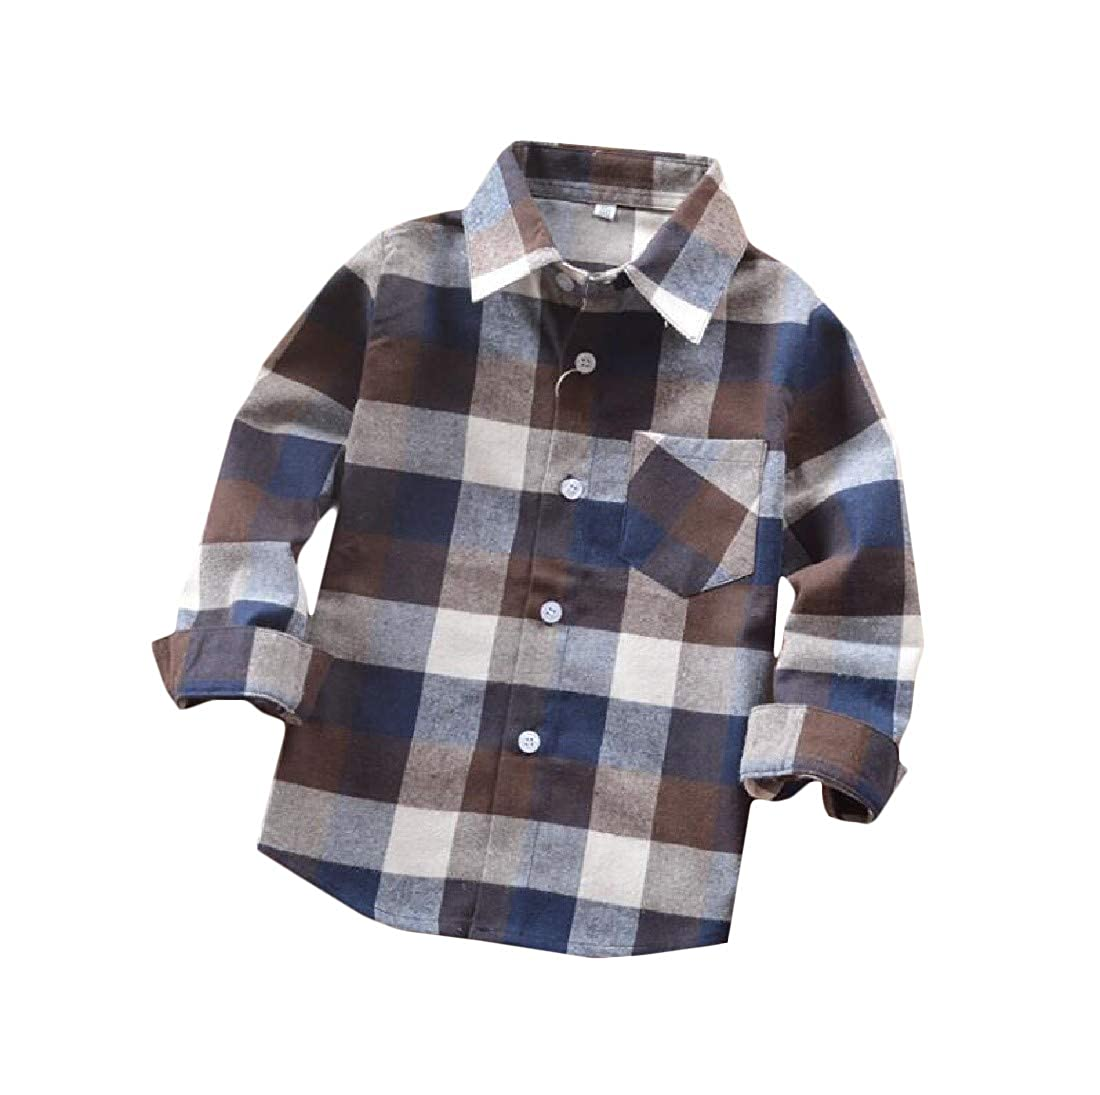 Joe Wenko Boys Casual Button-Down Top Long-Sleeve Plaid Shirts